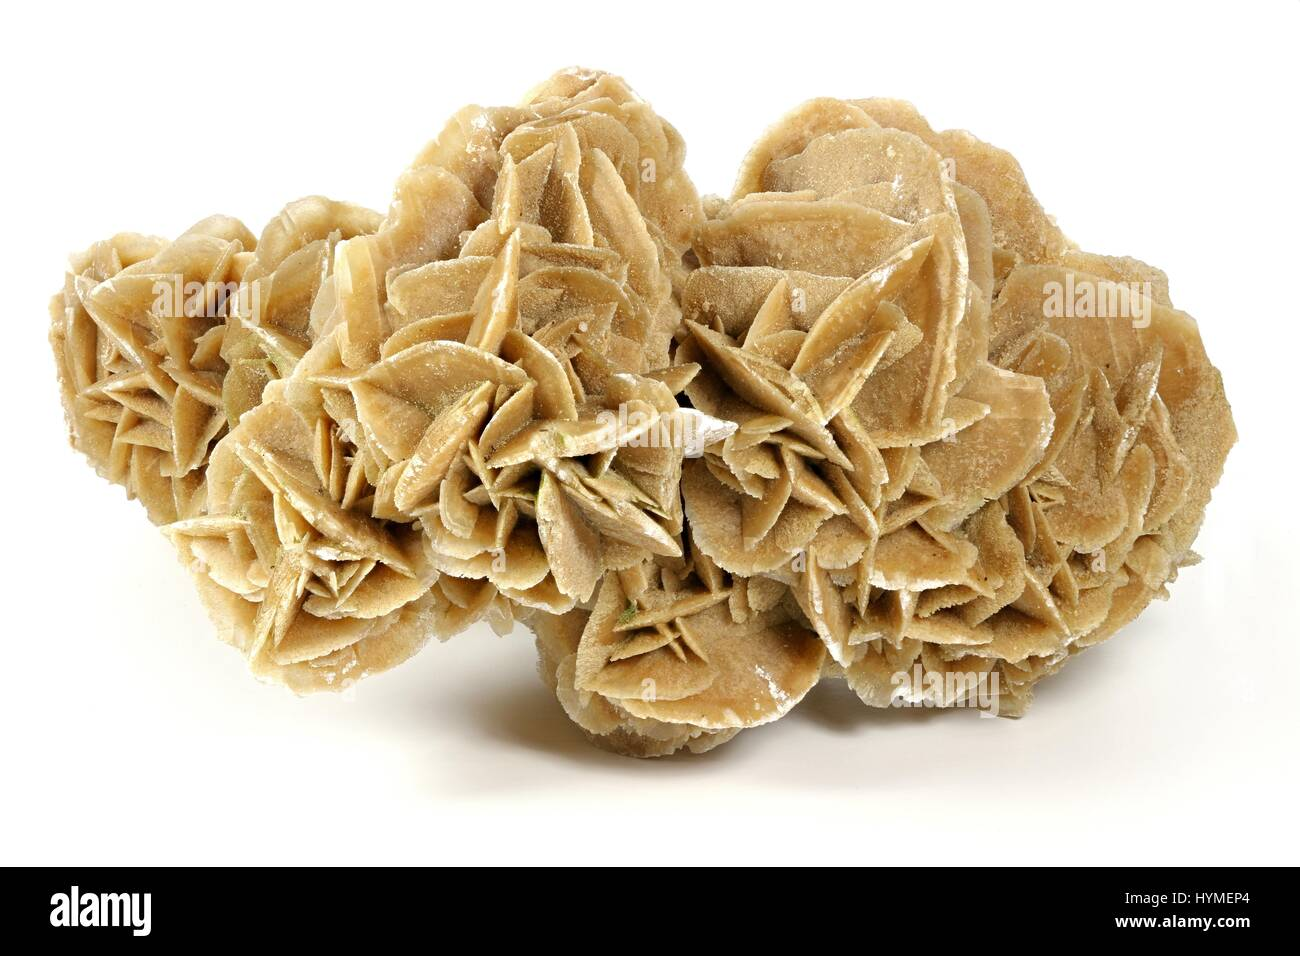 desert rose found in Tunisia isolated on white background - Stock Image